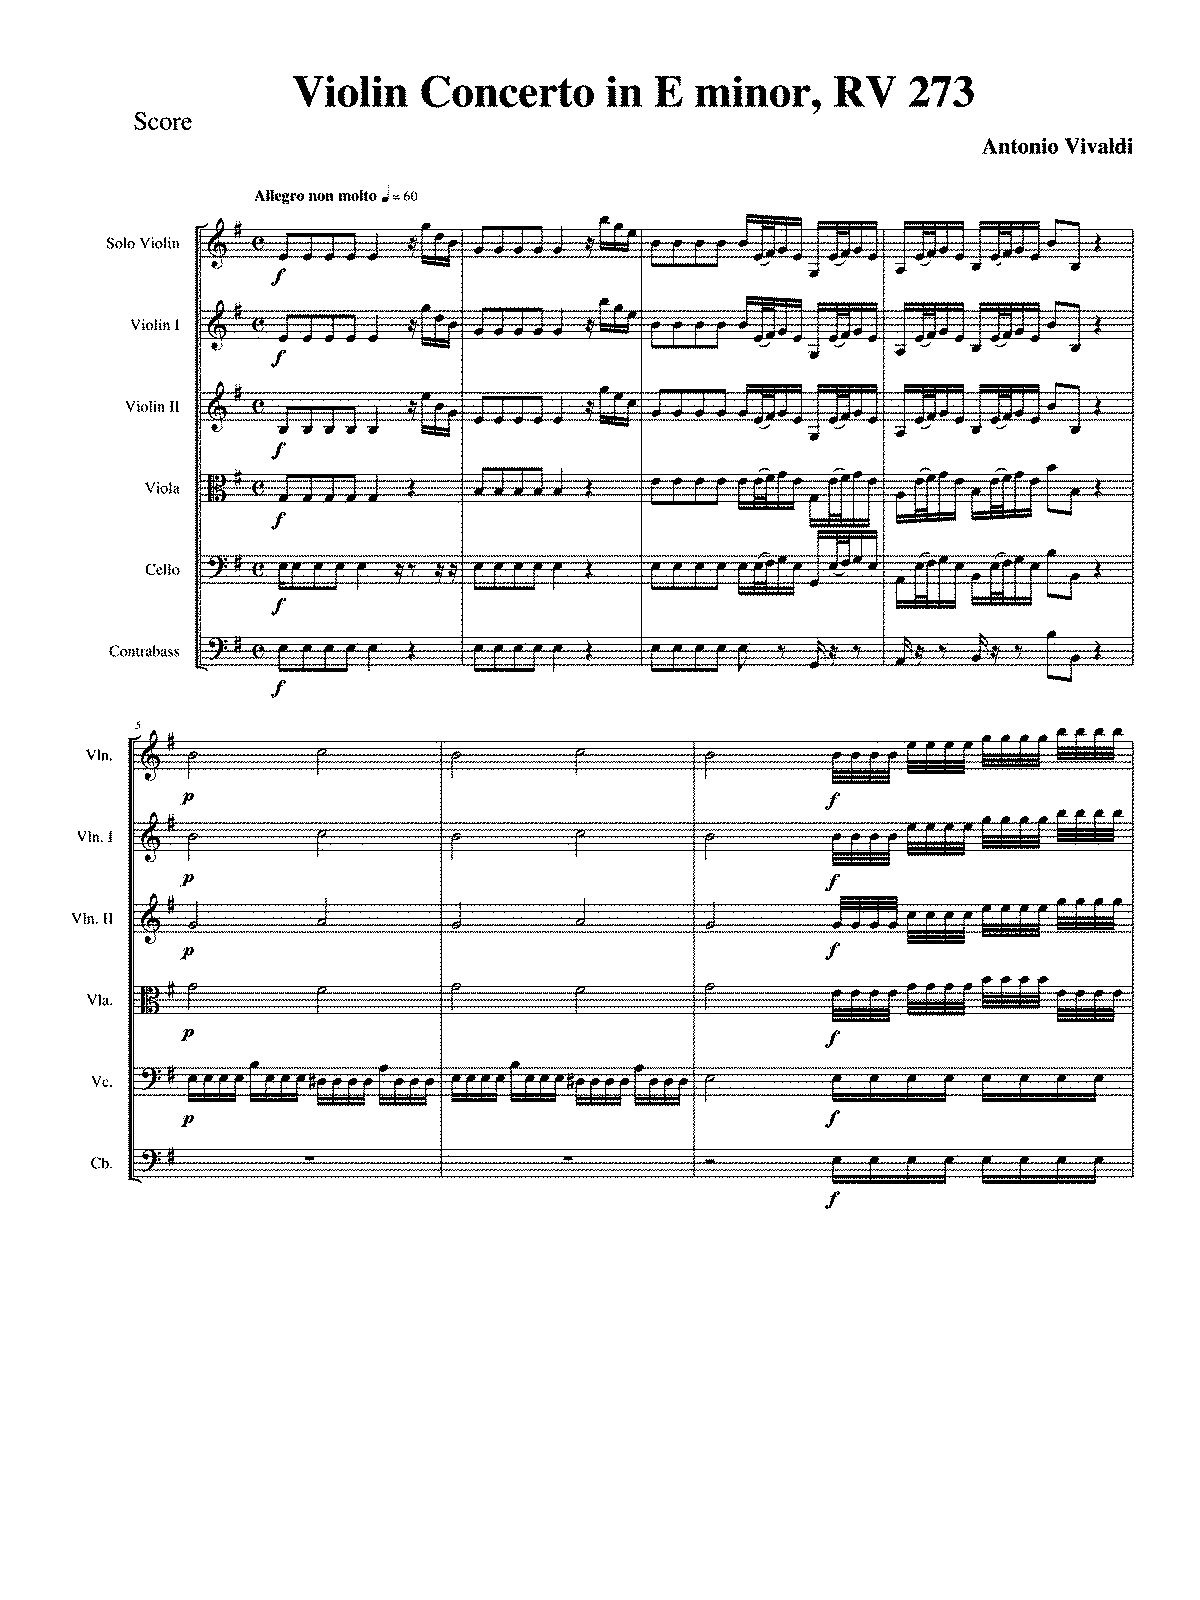 PMLP229367-Vivaldi Violin Concerto in E minor RV273 - Score -Finale-.pdf